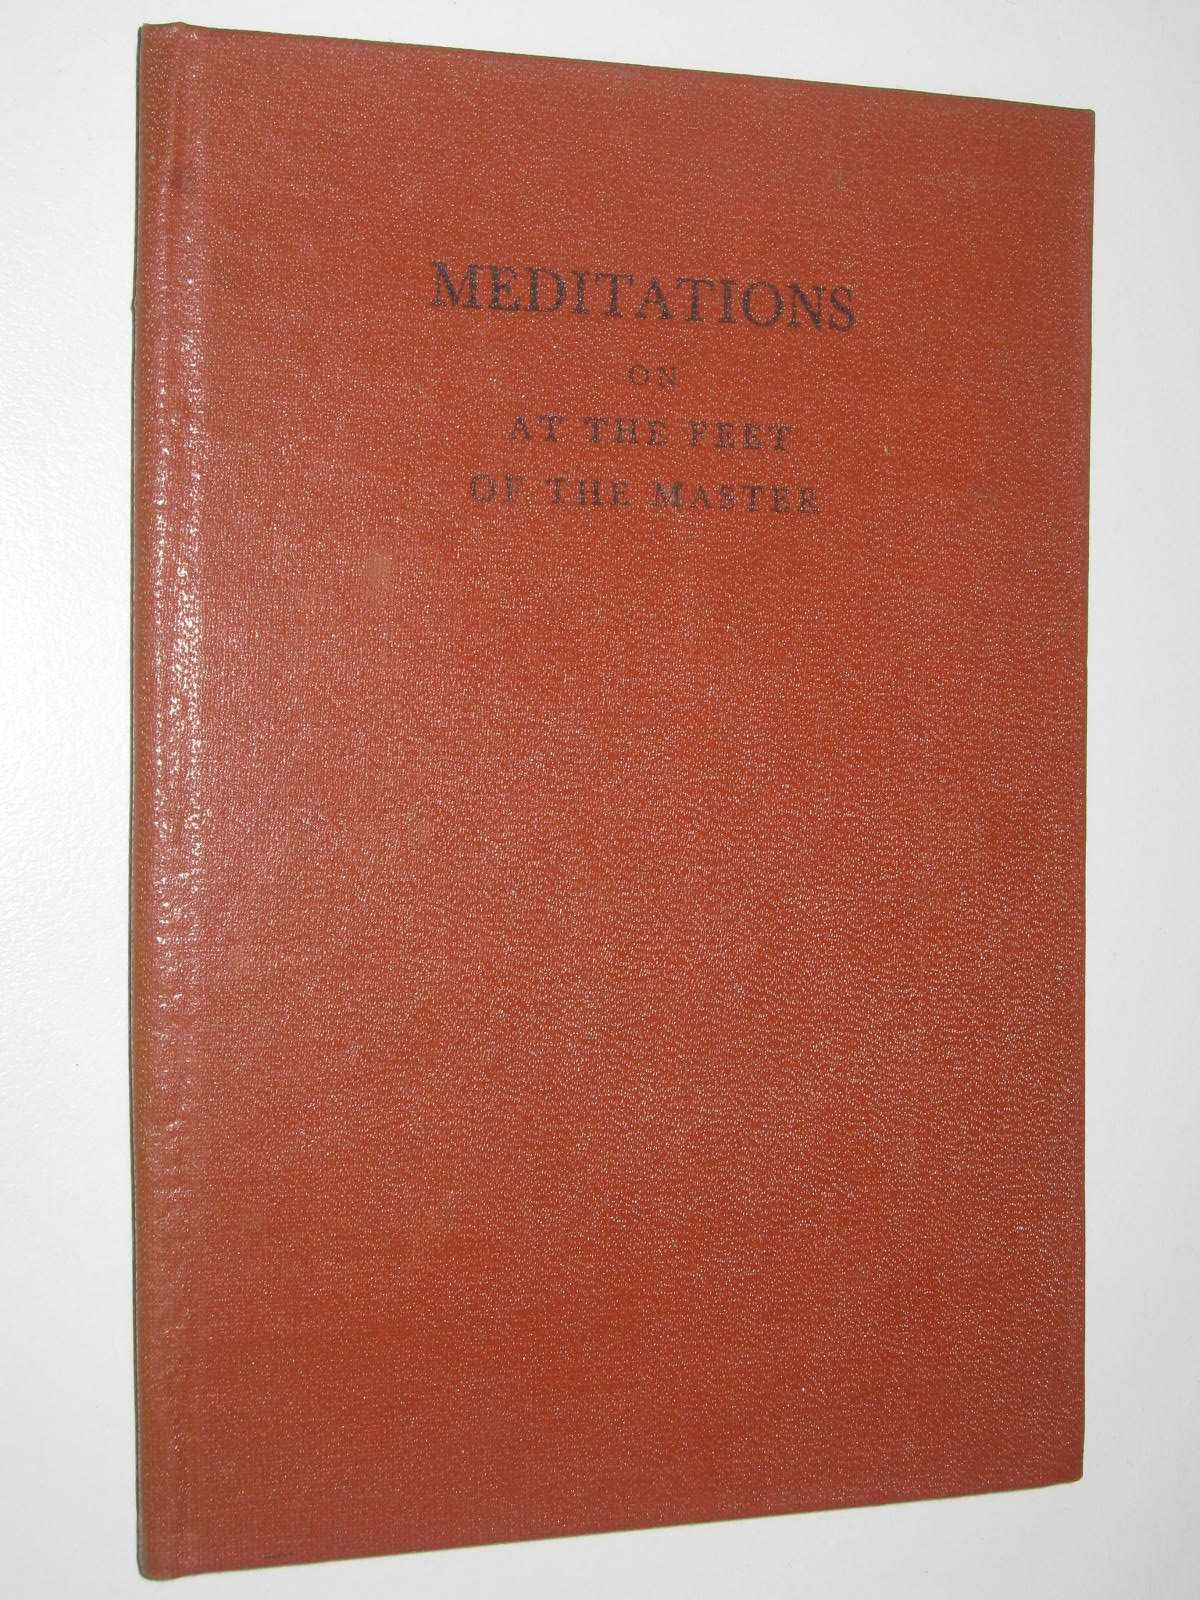 Image for Meditations Being Selections From On At The Feet Of The Master